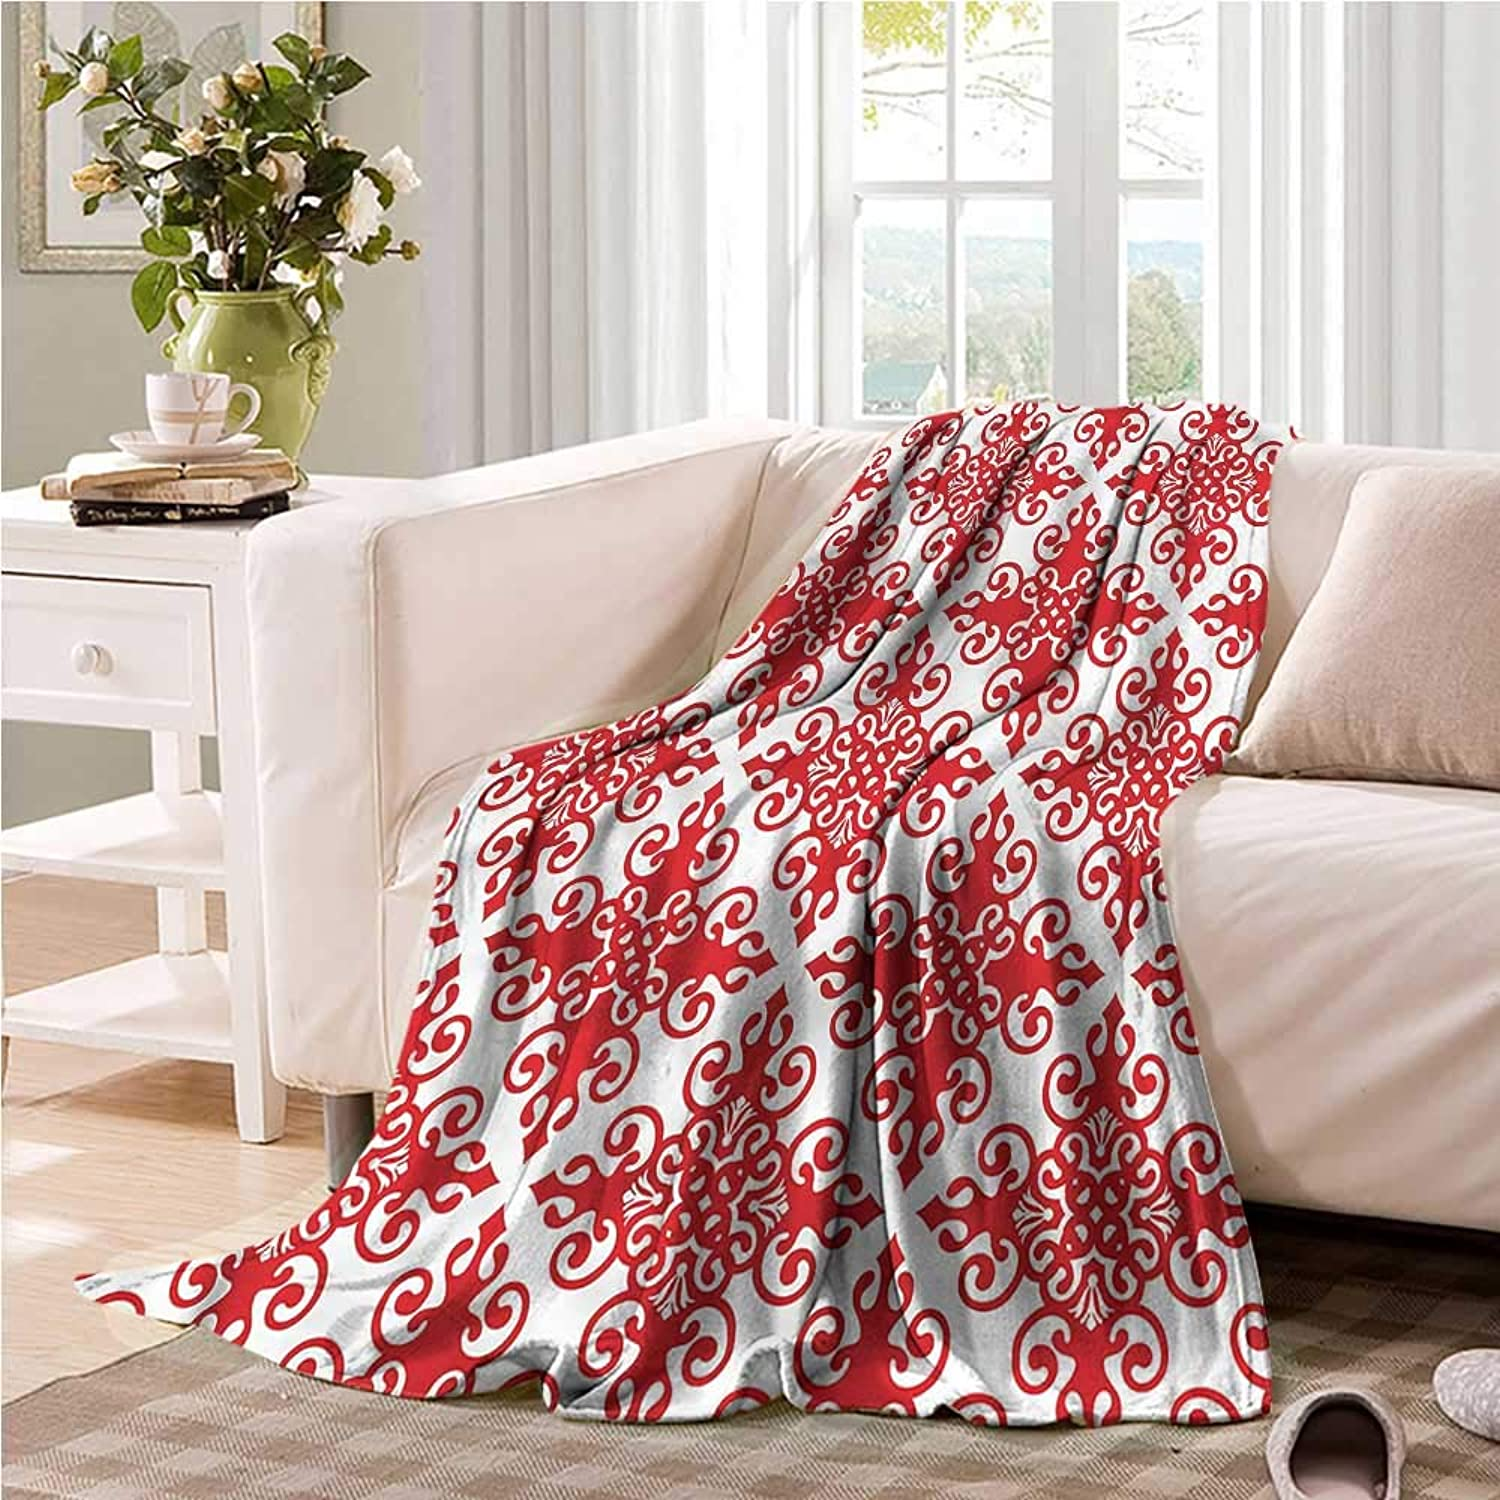 Oncegod Comfort Blanket Red Western Scroll Ornament Camping Throw,Office wrap 60  W x 51  L